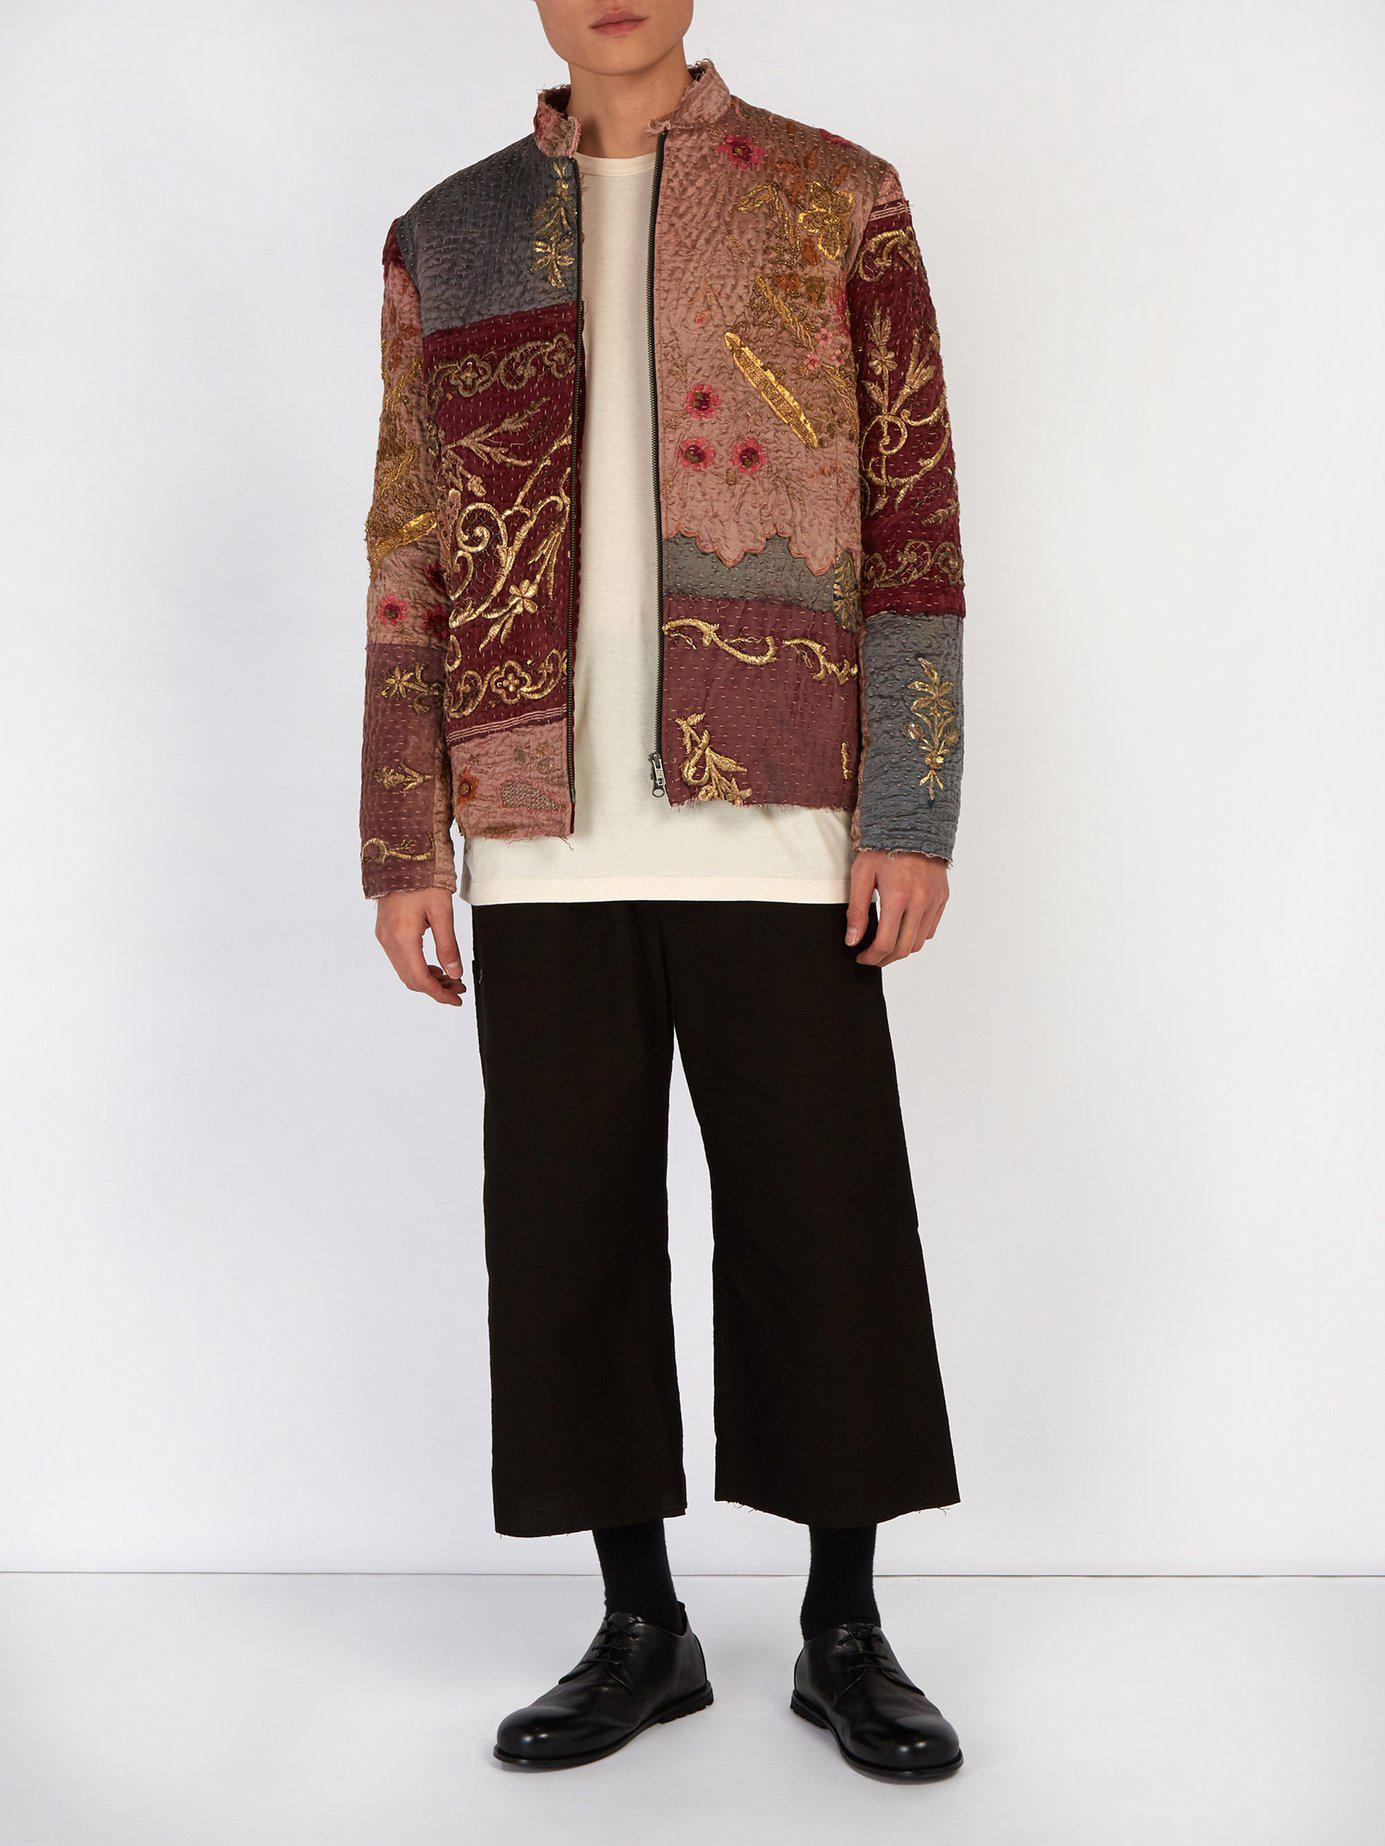 Lyst By Walid Ecclesiastical 18th Century Silk Panel Jacket For Men